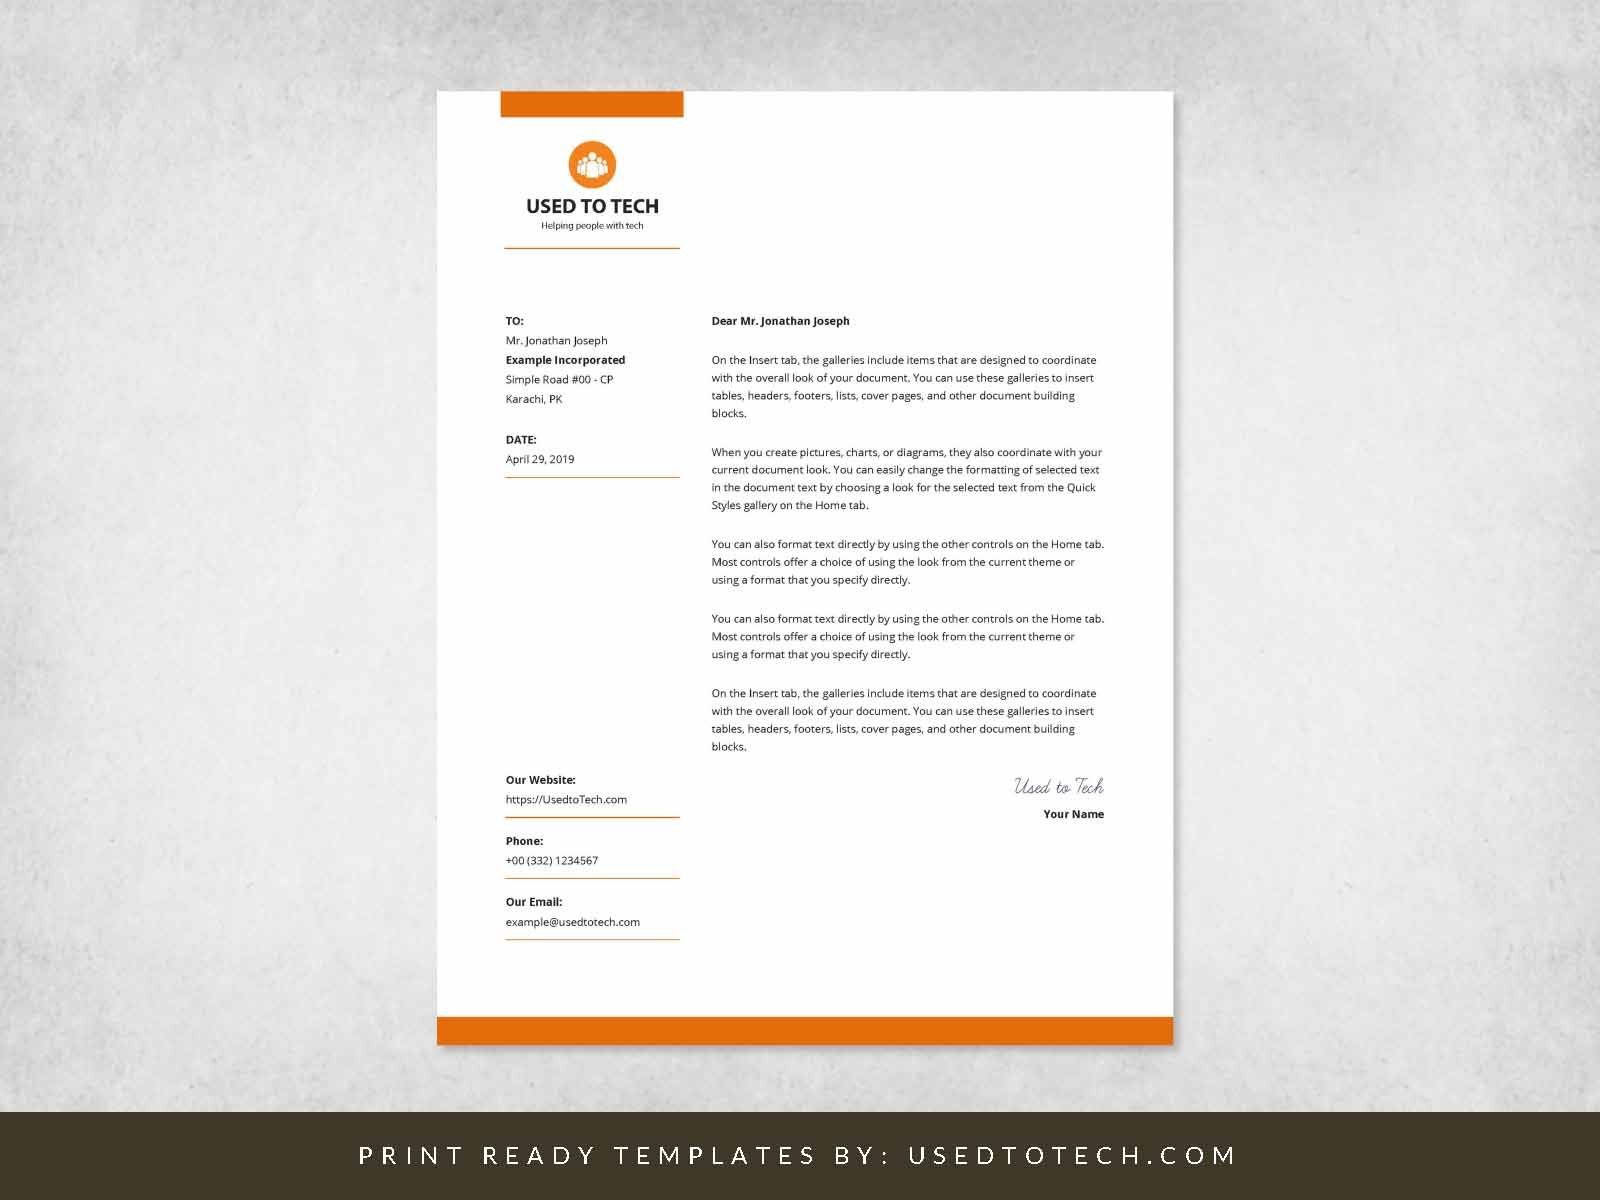 000 Beautiful Microsoft Word Free Template High Def  Templates For Report Invoice Uk DownloadFull